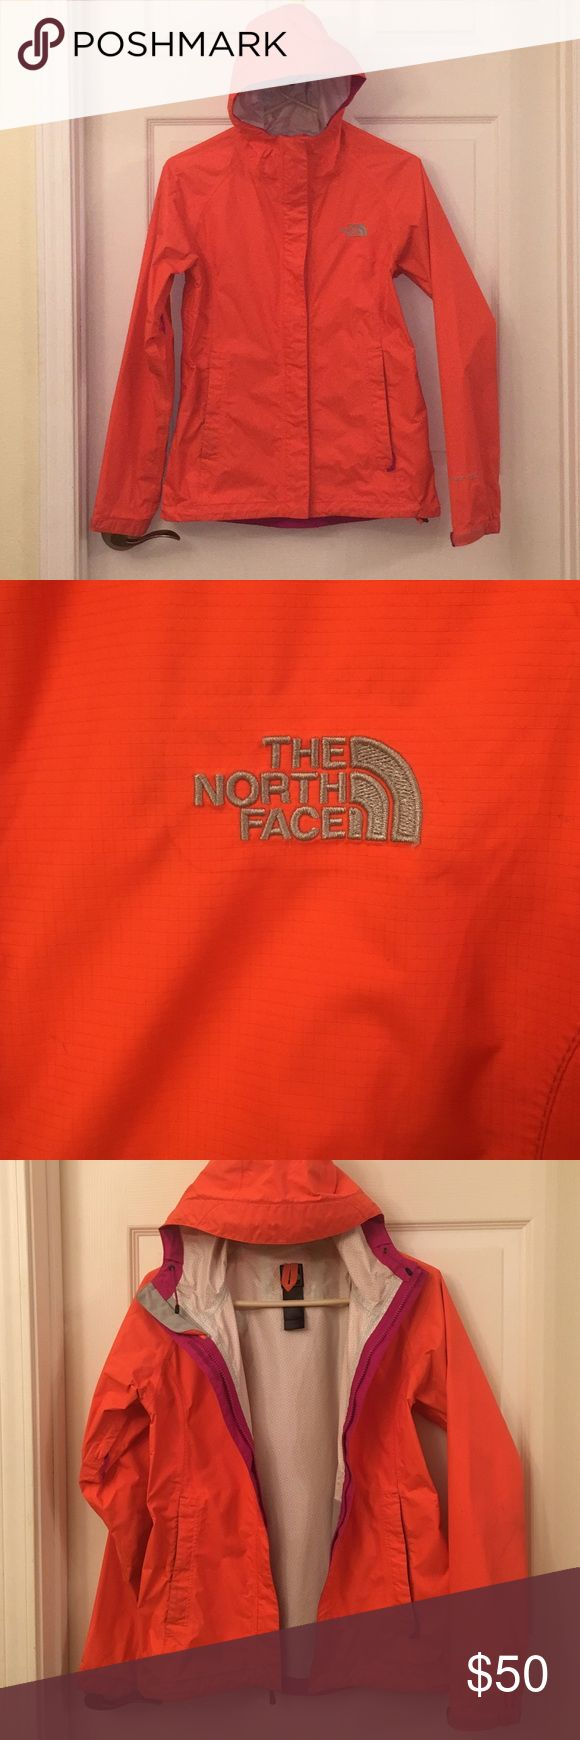 Women's North Face Venture Jacket HyVent 2.5L This jacket is in extremely good condition, no holes or tears. Cute, bright color! Only worn a couple times! North Face Jackets & Coats